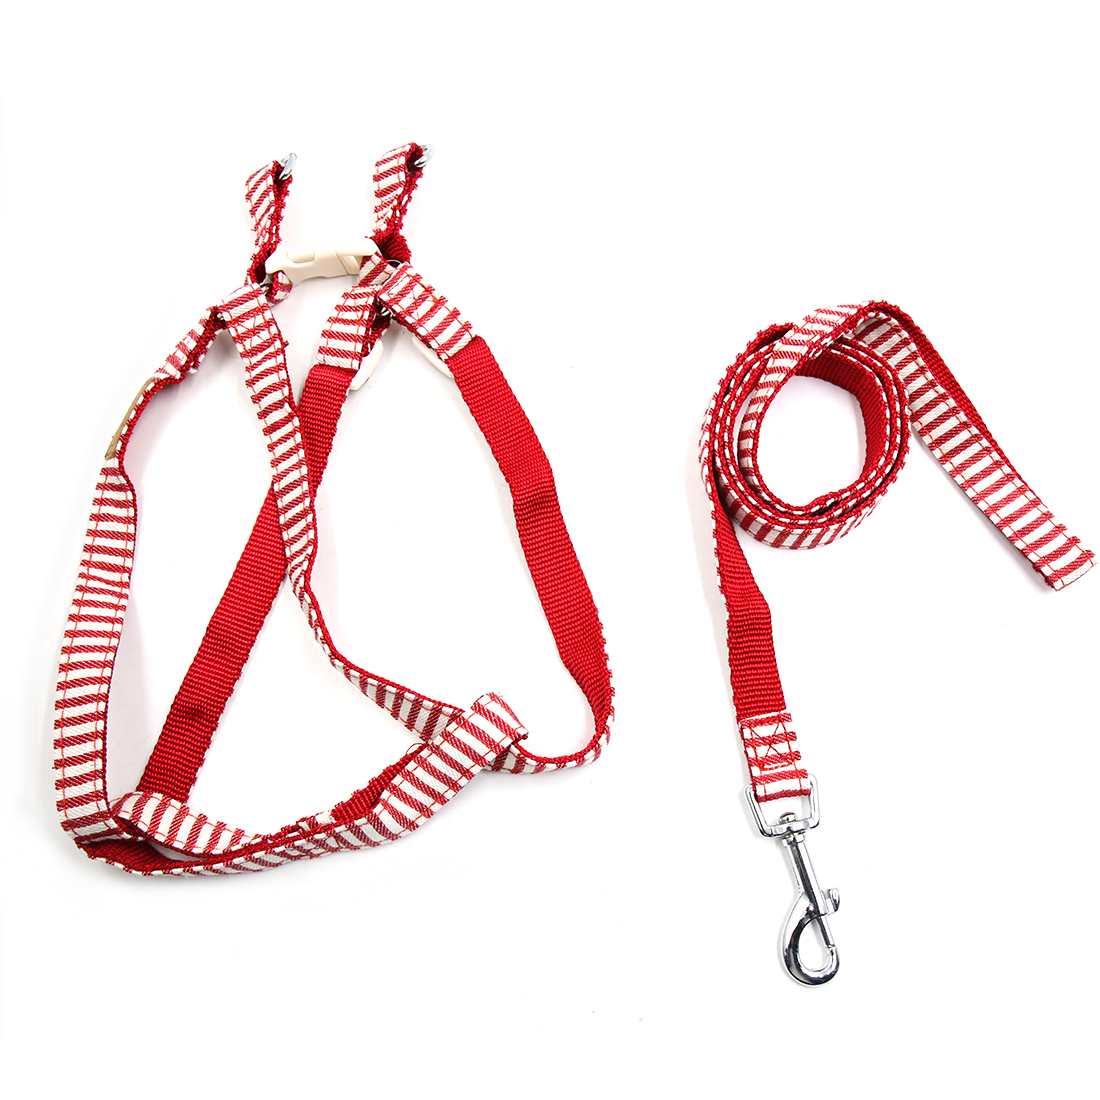 Adjustable Nylon Navy Stripe Dog Harness Leash Set Walking Leads Safe Control Collar Rope Red S